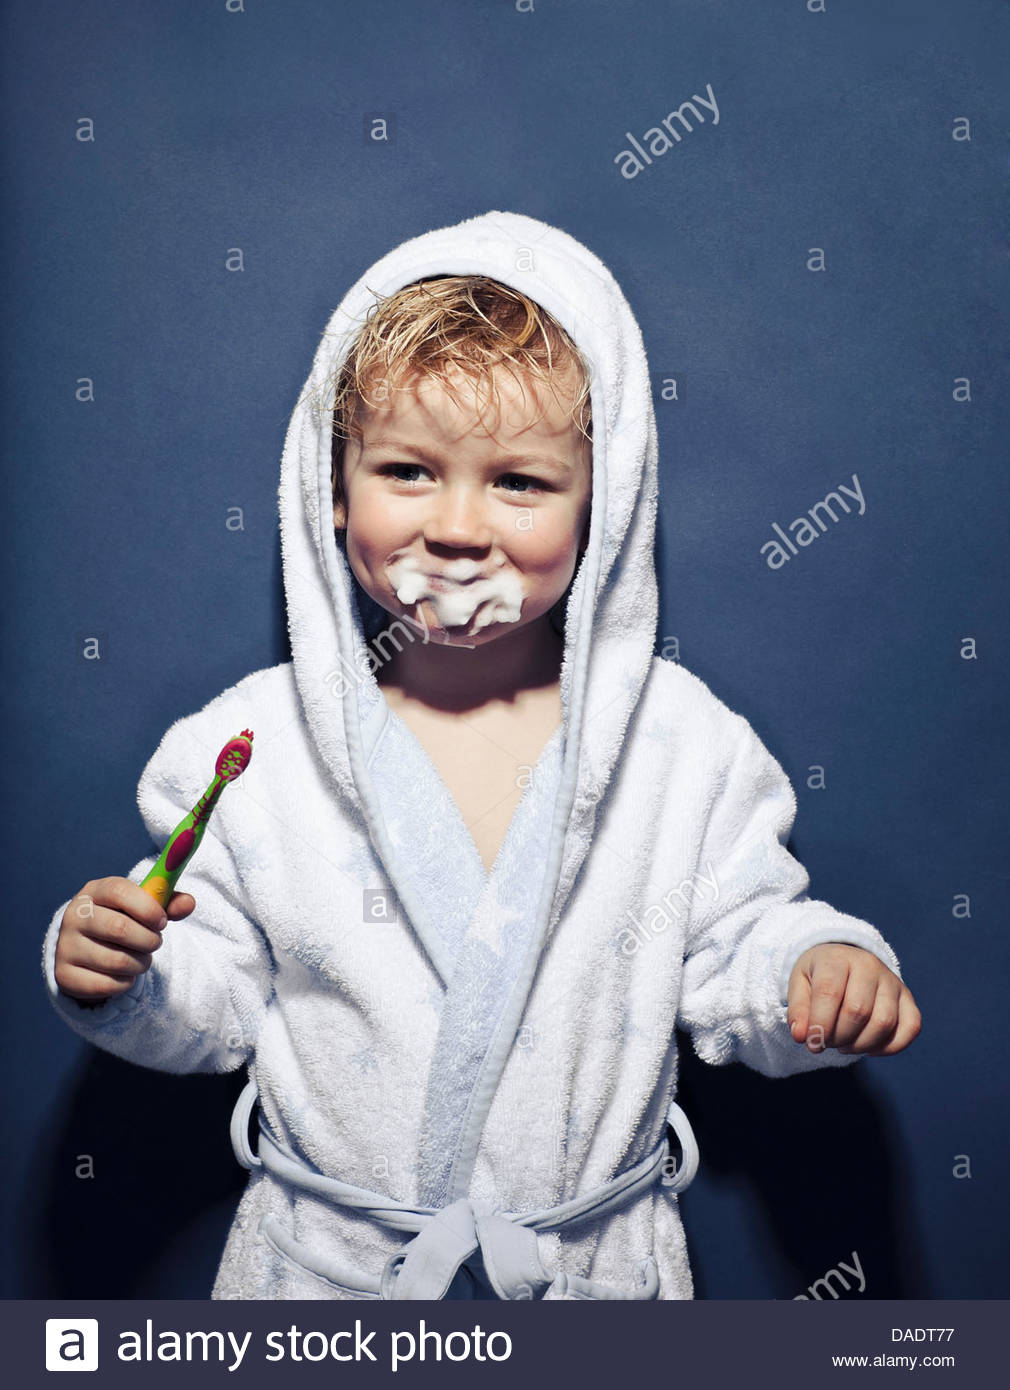 Young girl with frothy mouth holding toothbrush - Stock Image